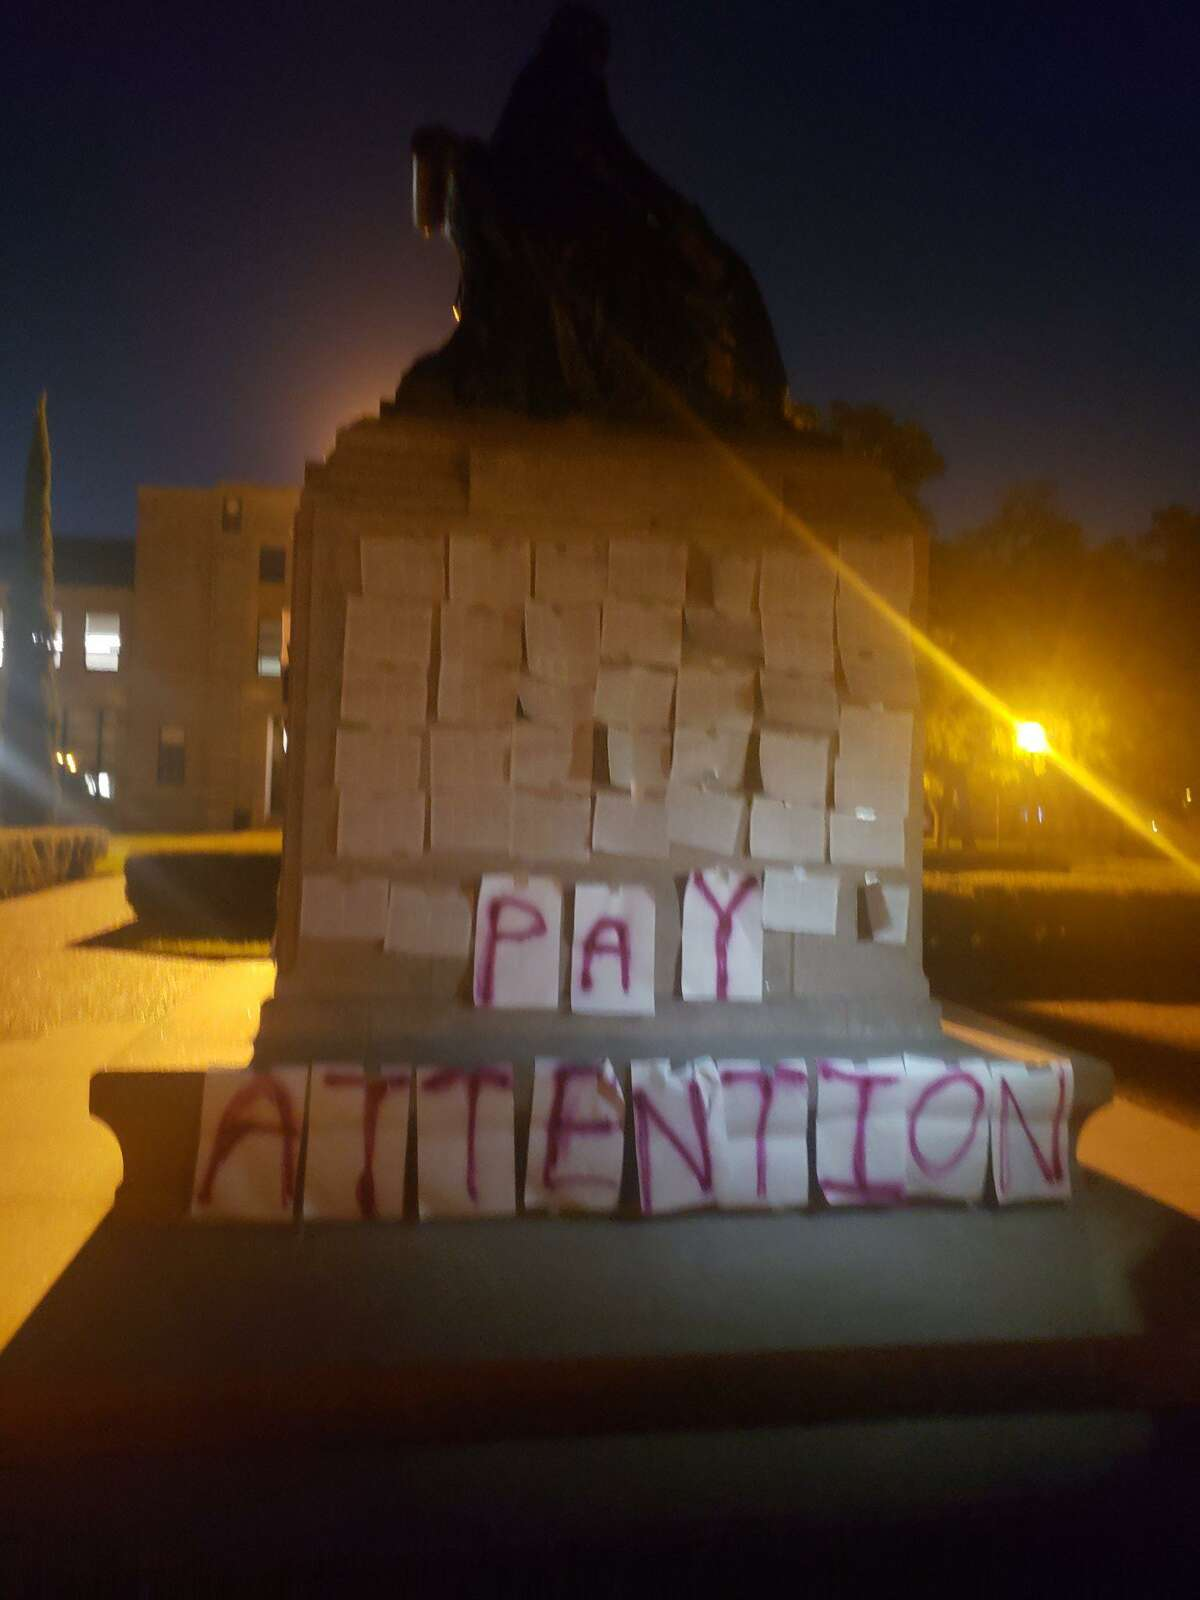 """Several copies of a former Rice University student's op-ed about her sexual assault were posted to the base of an on-campus statue of the college's founder William Marsh Rice on Sept. 26. Beside the display were the words """"Pay attention"""" in red capital letters. Rice University Police Department arrived at the scene around 2:30 a.m. that morning and removed the display, according to a university spokesman."""